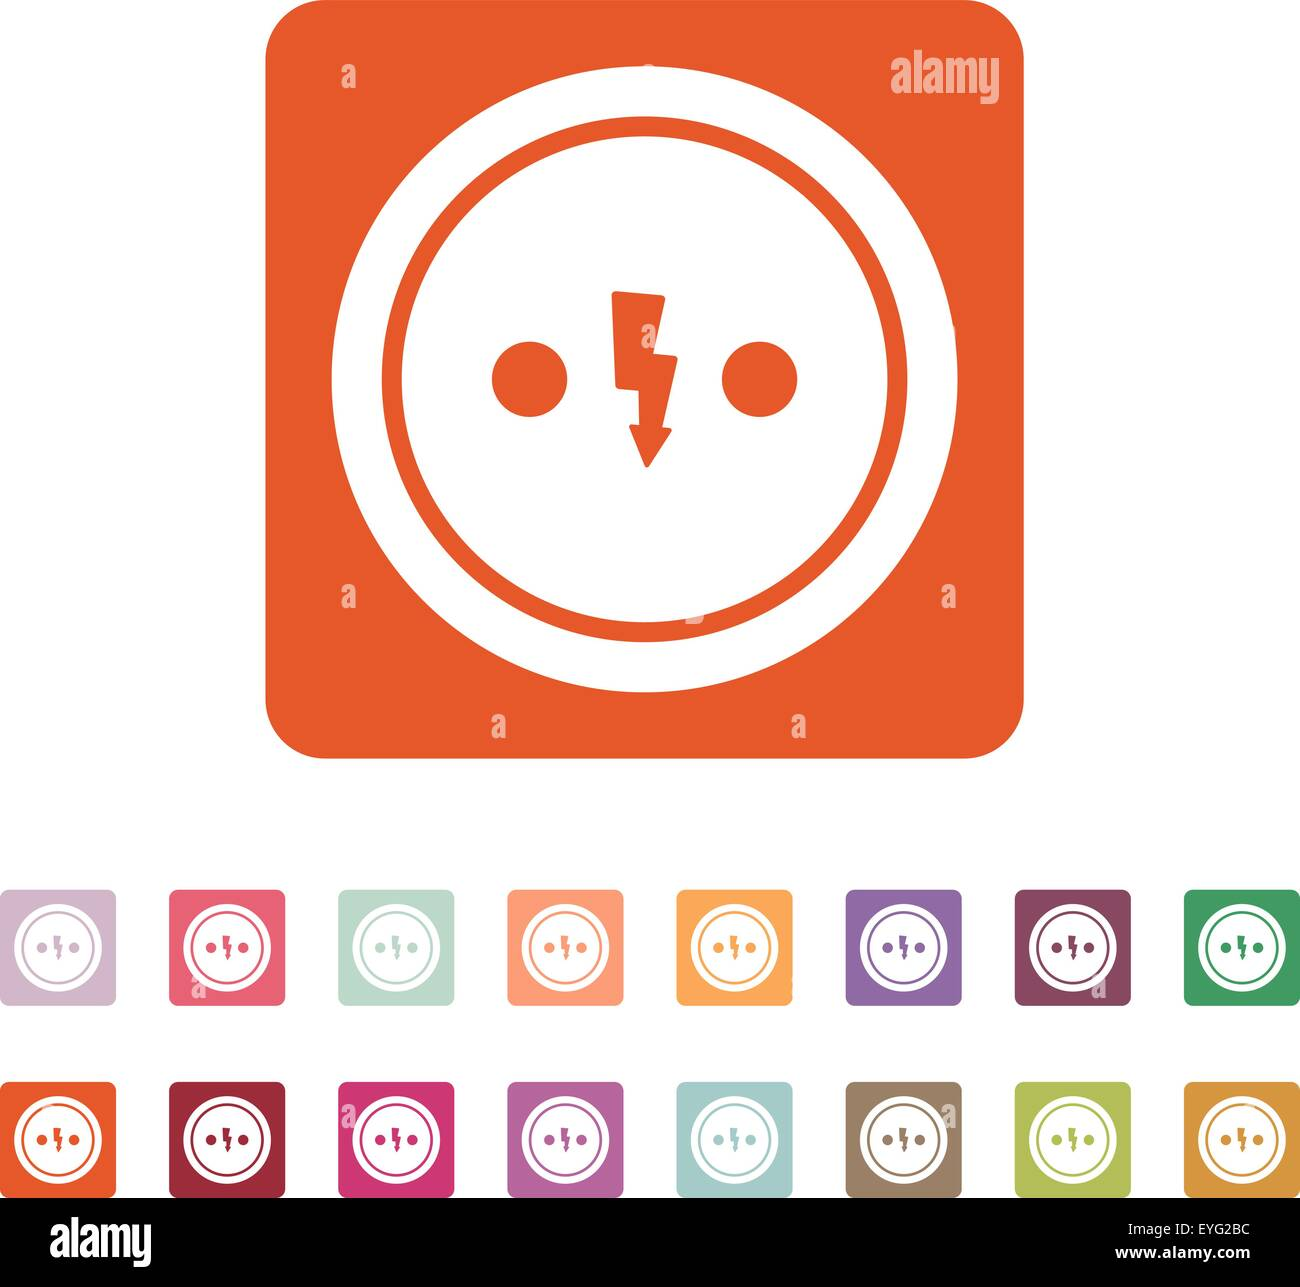 The Electrical Outlet Icon Socket Symbol Flat Stock Vector Art